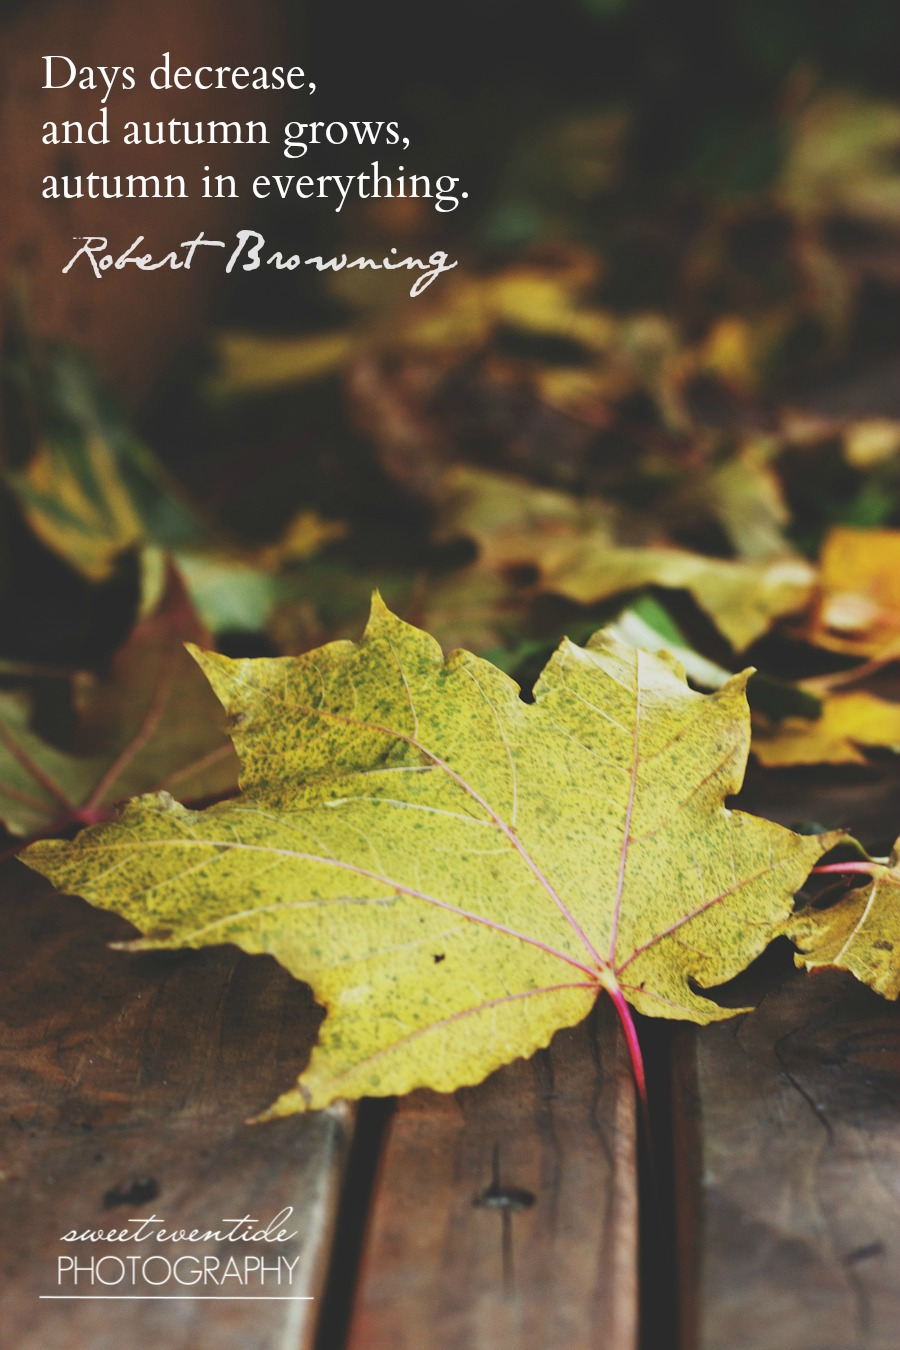 yellow maple leaf with robert browning quote